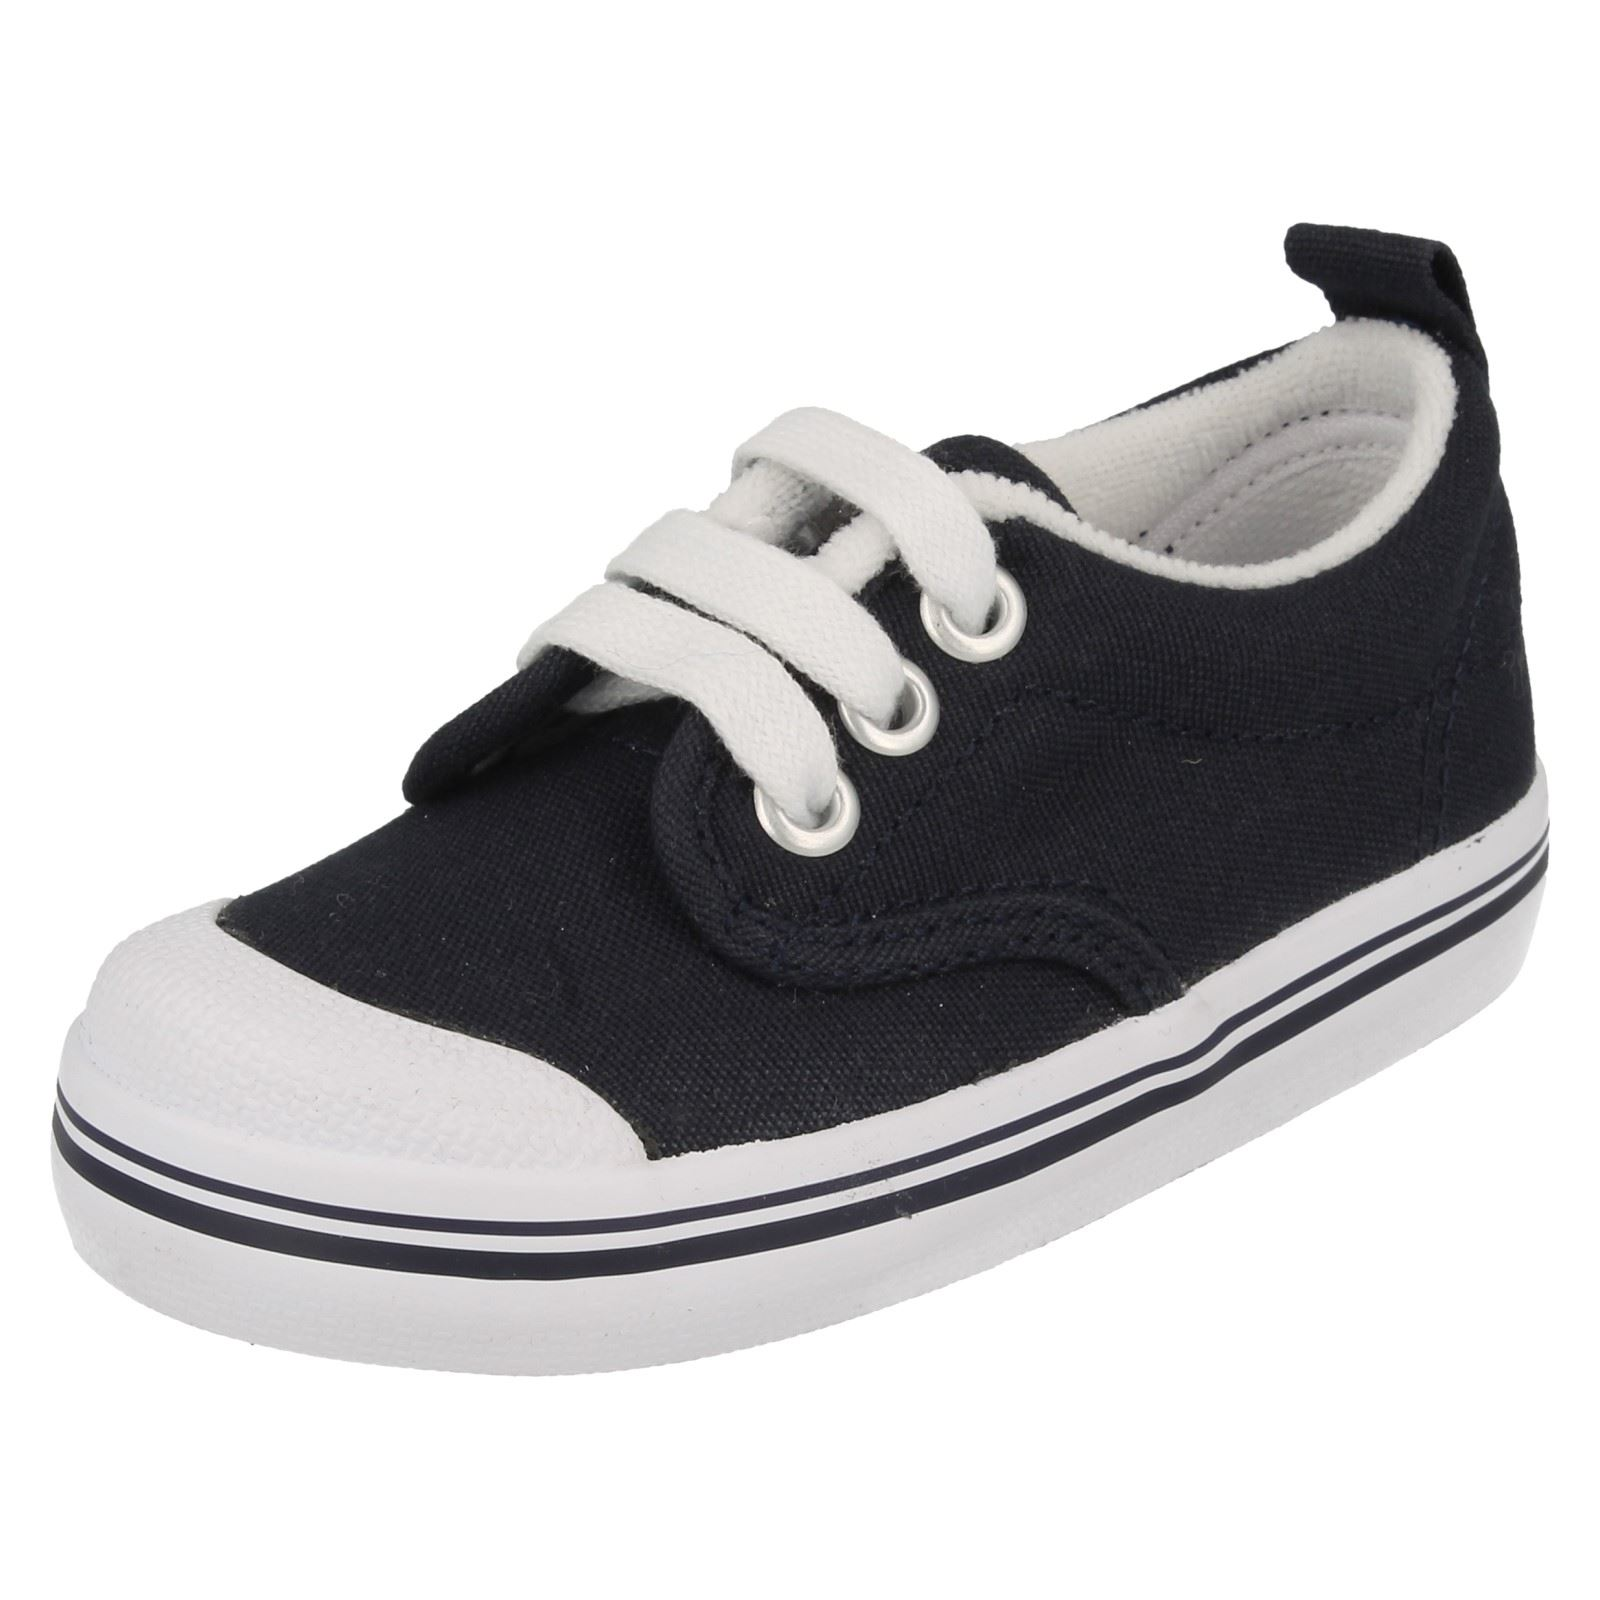 Boys Keds Casual Pumps Scooter